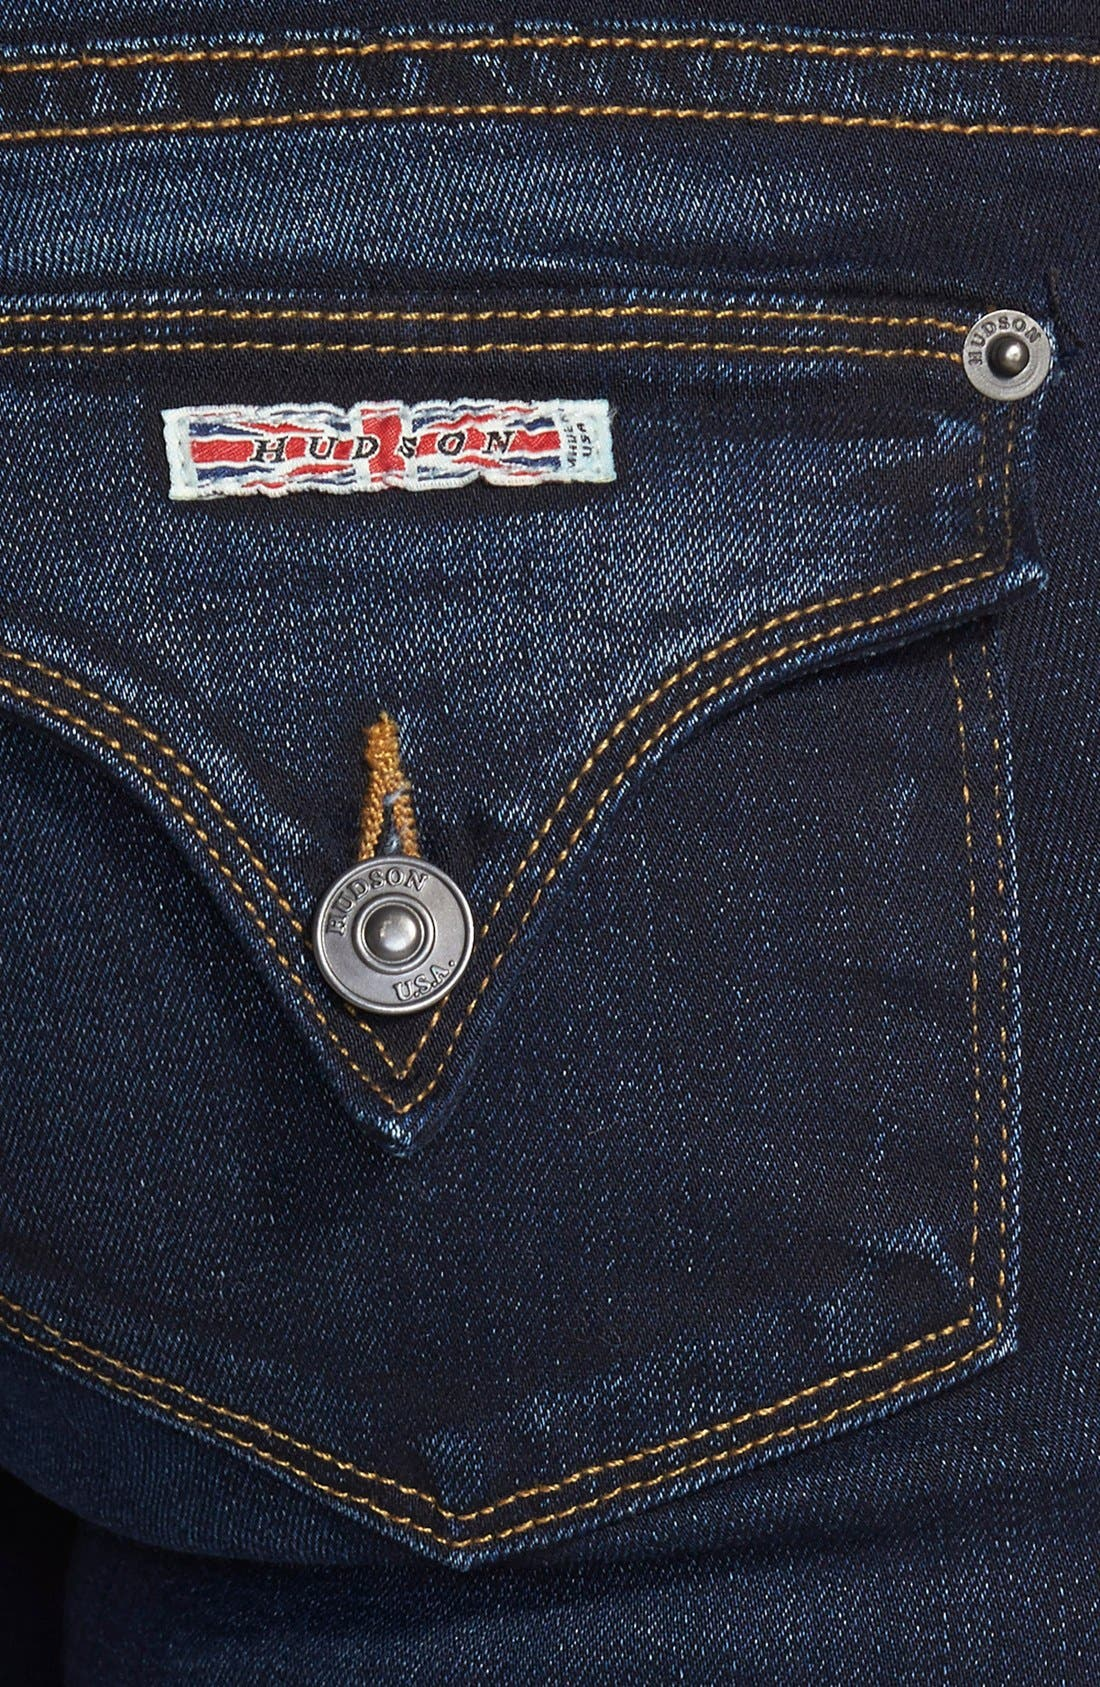 'Elysian - Beth' Baby Bootcut Jeans,                             Alternate thumbnail 3, color,                             Oracle